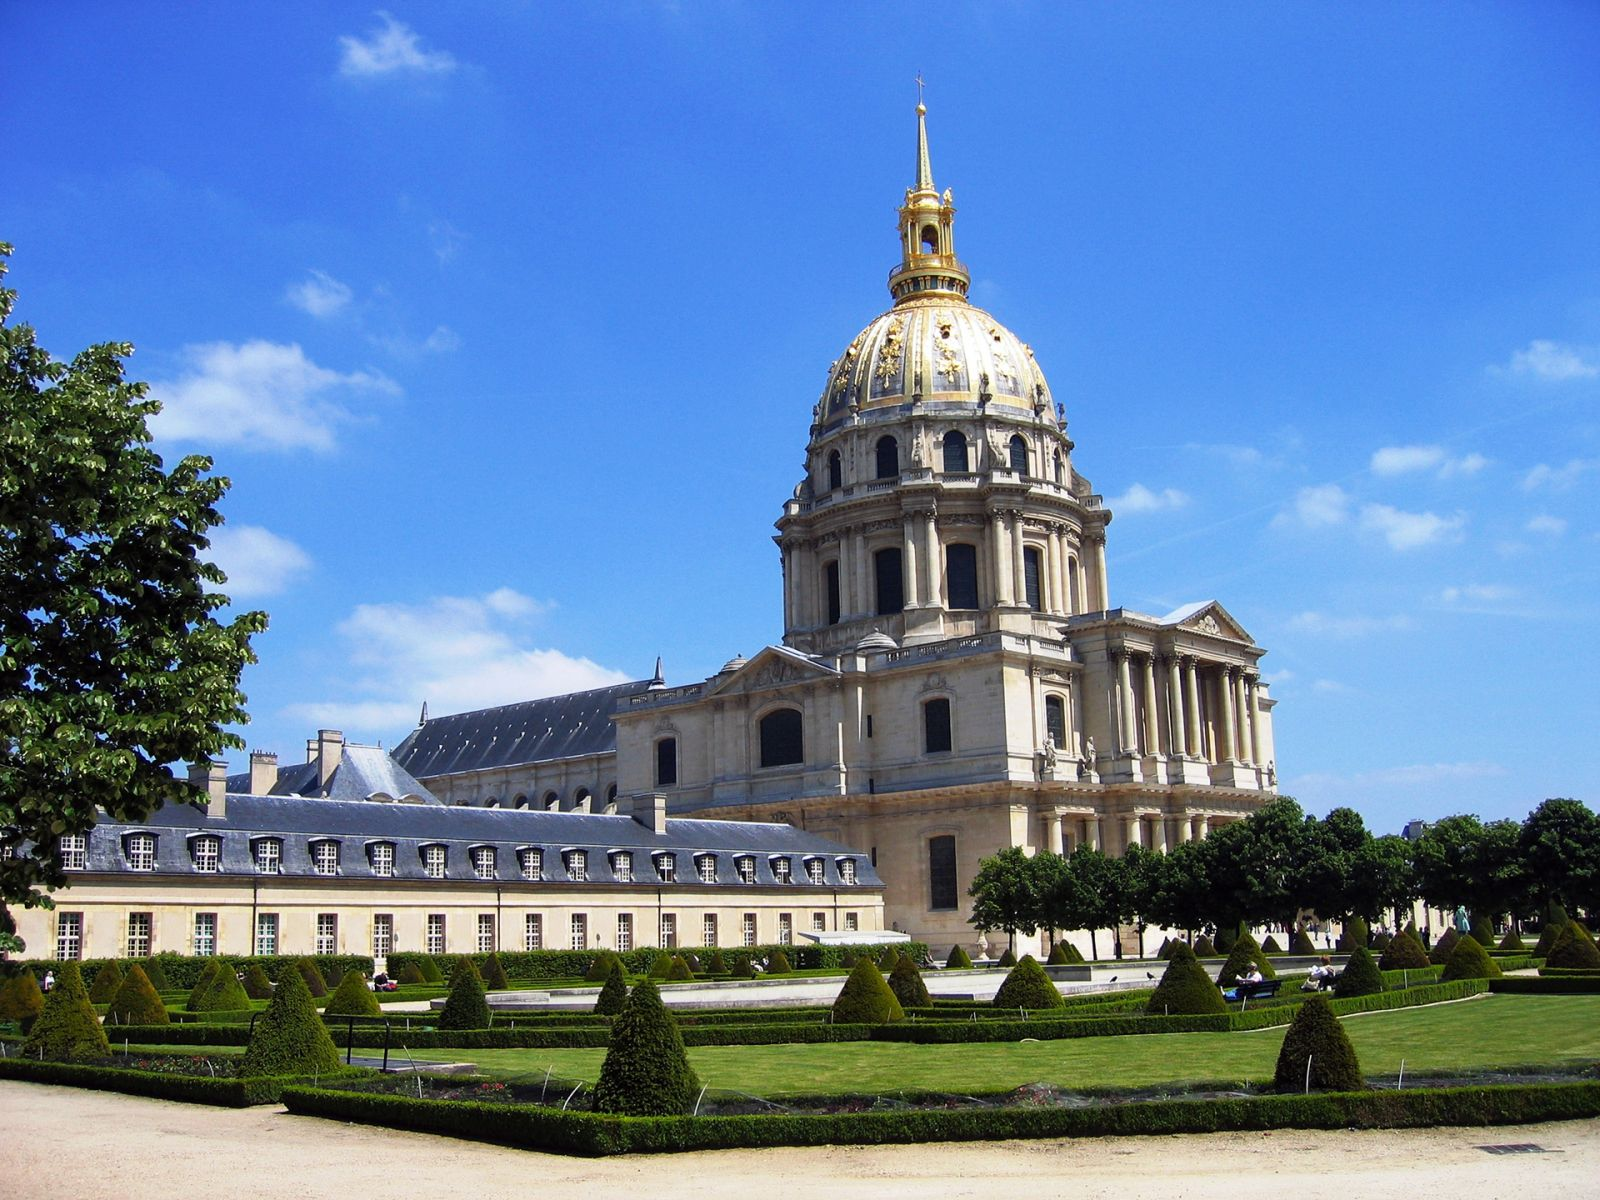 549/Photos/Paris/Invalides2-optimisee.jpg